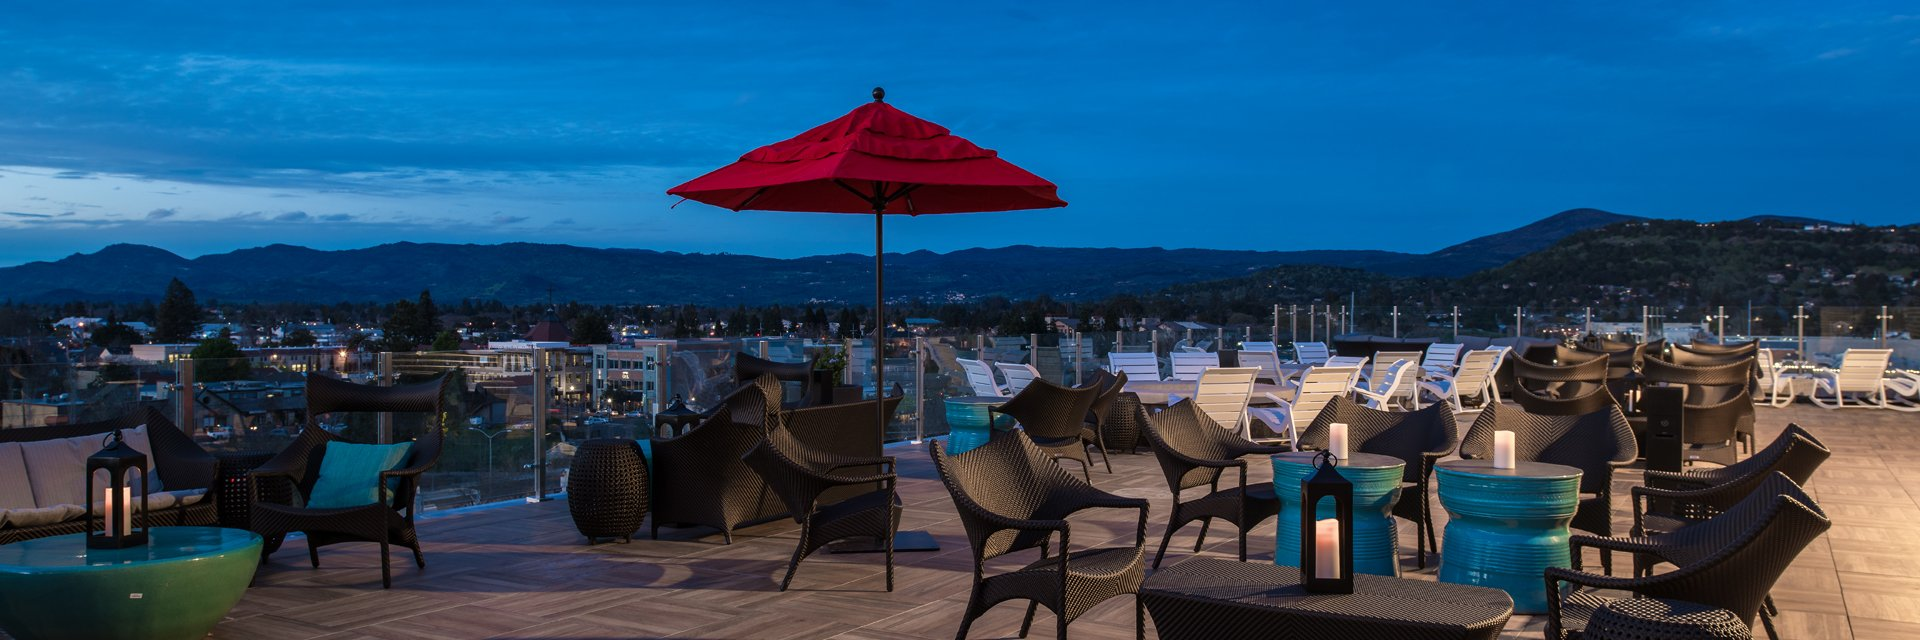 The Best Places for Cocktails in Napa Valley | Sky & Vine | Archer Hotel Napa